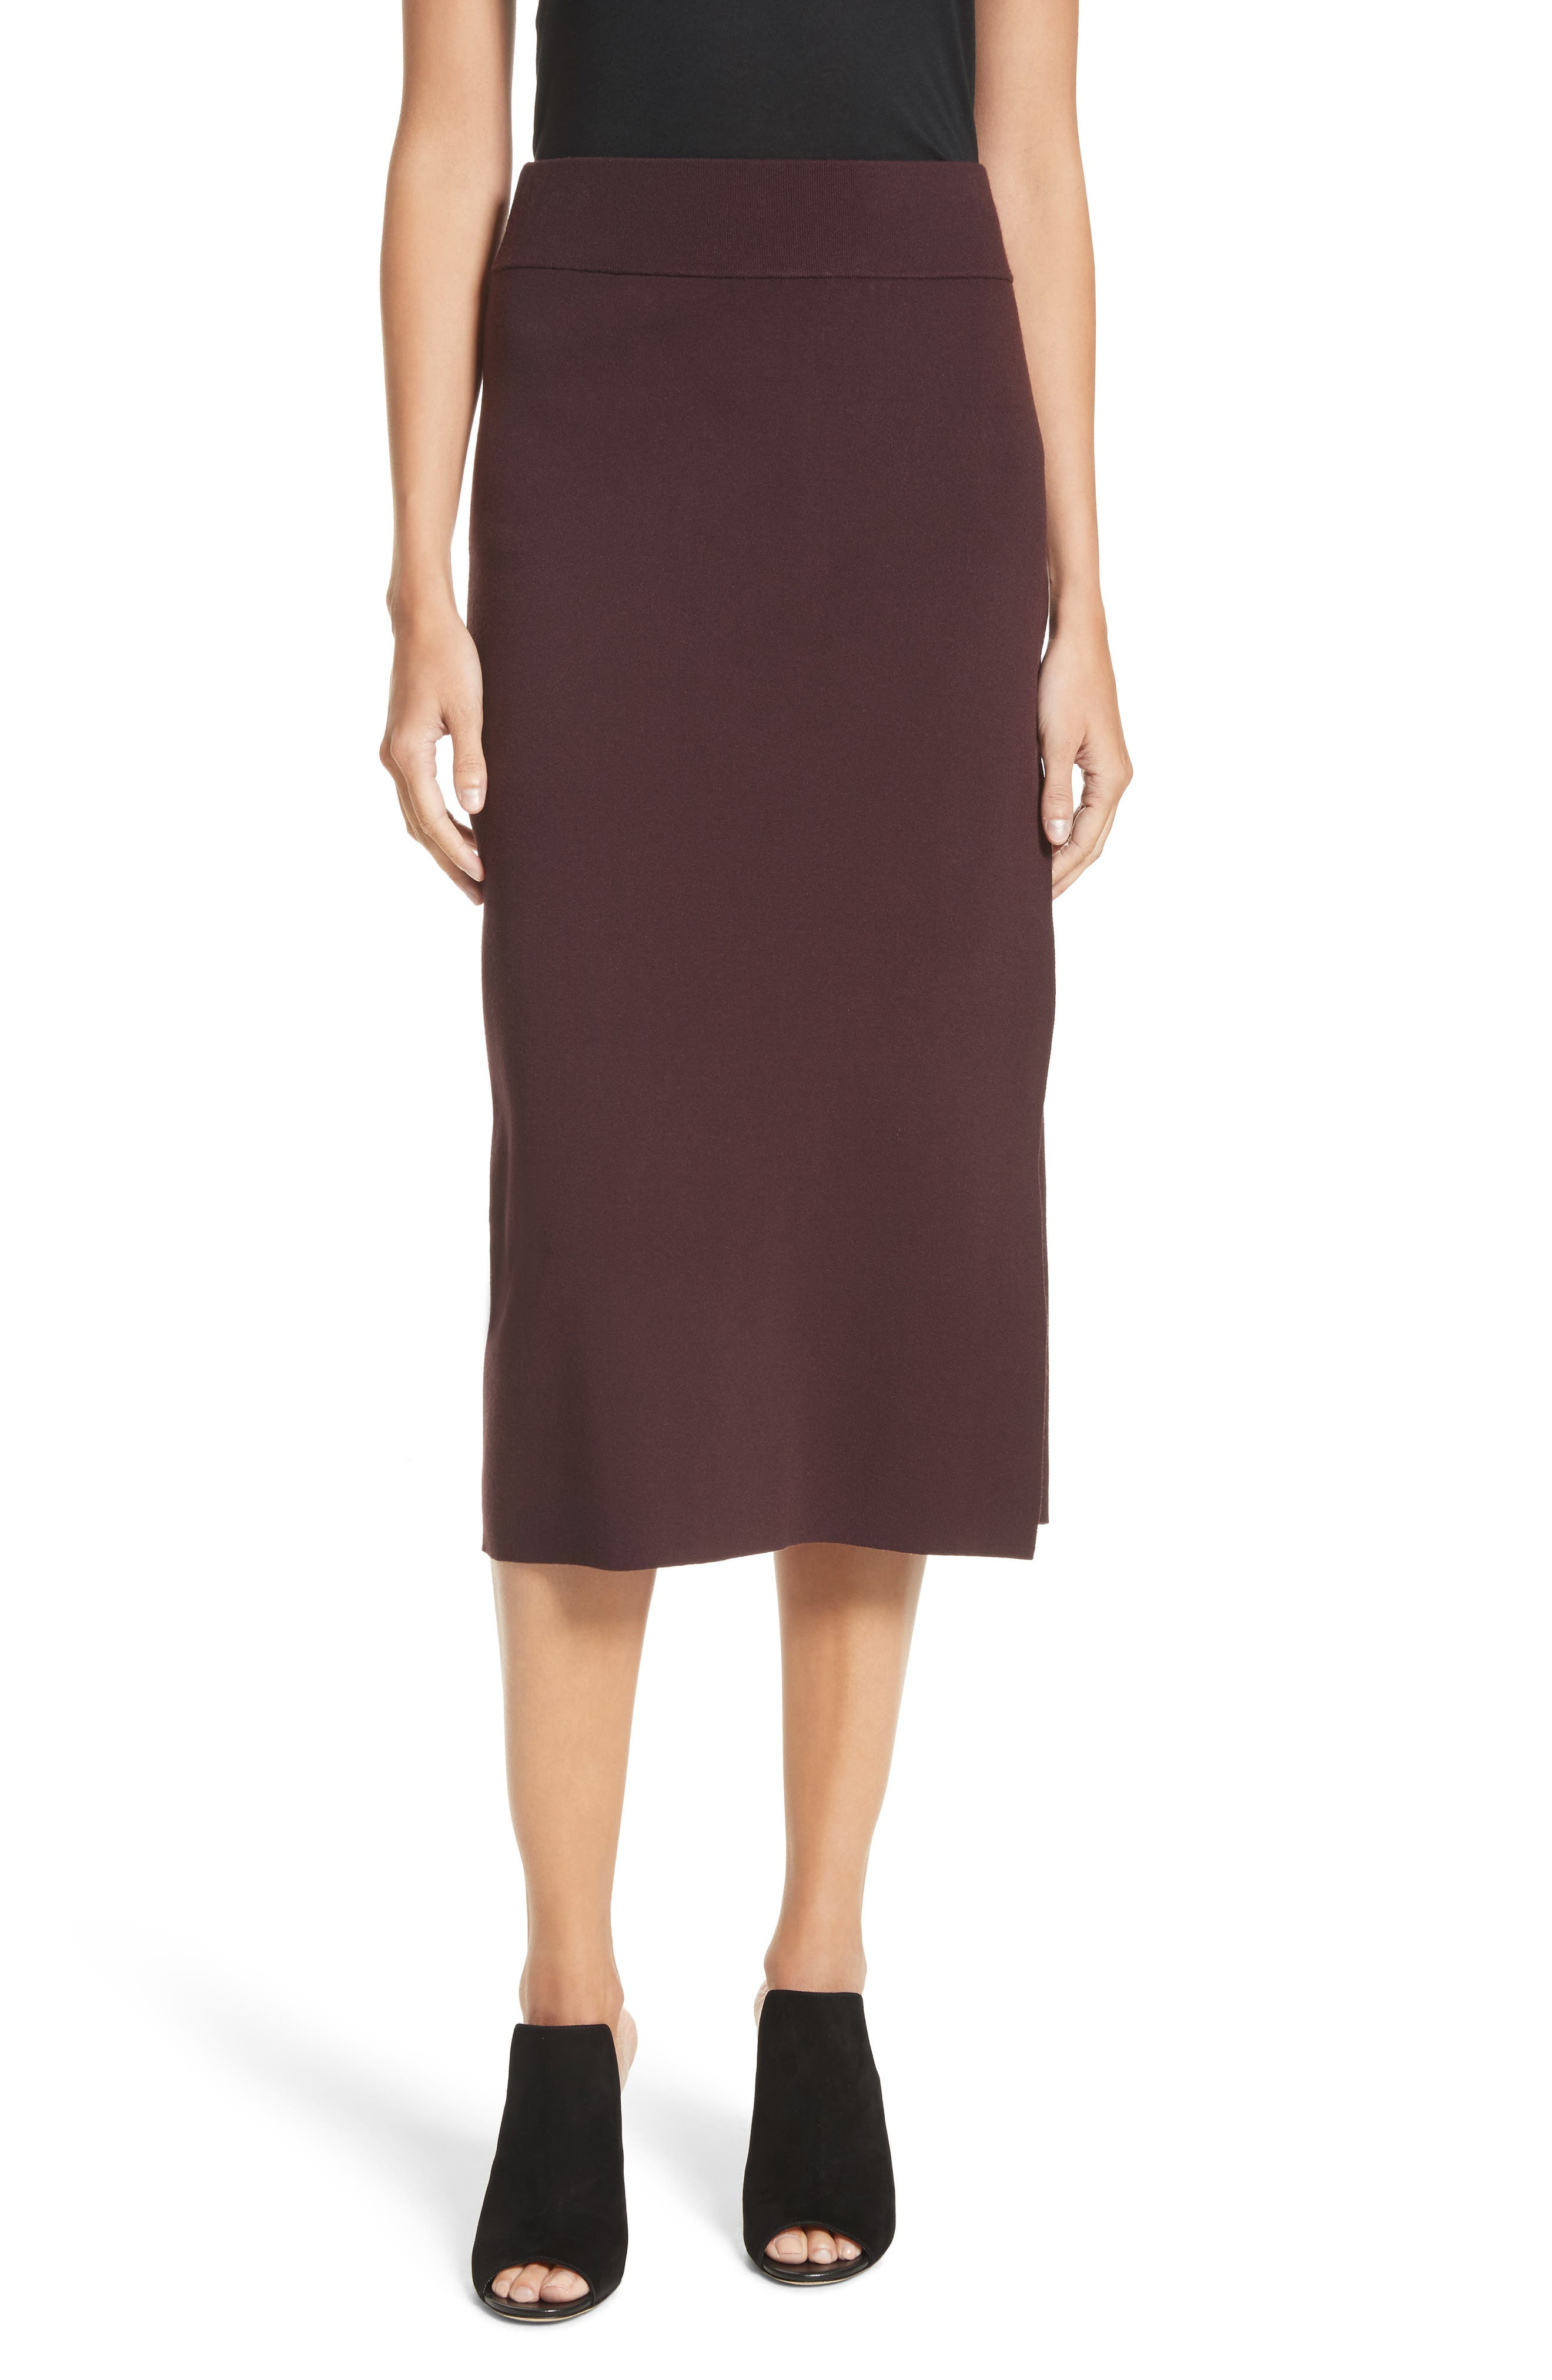 Smith Knit Pencil Skirt,                             Main thumbnail 1, color,                             Raisin